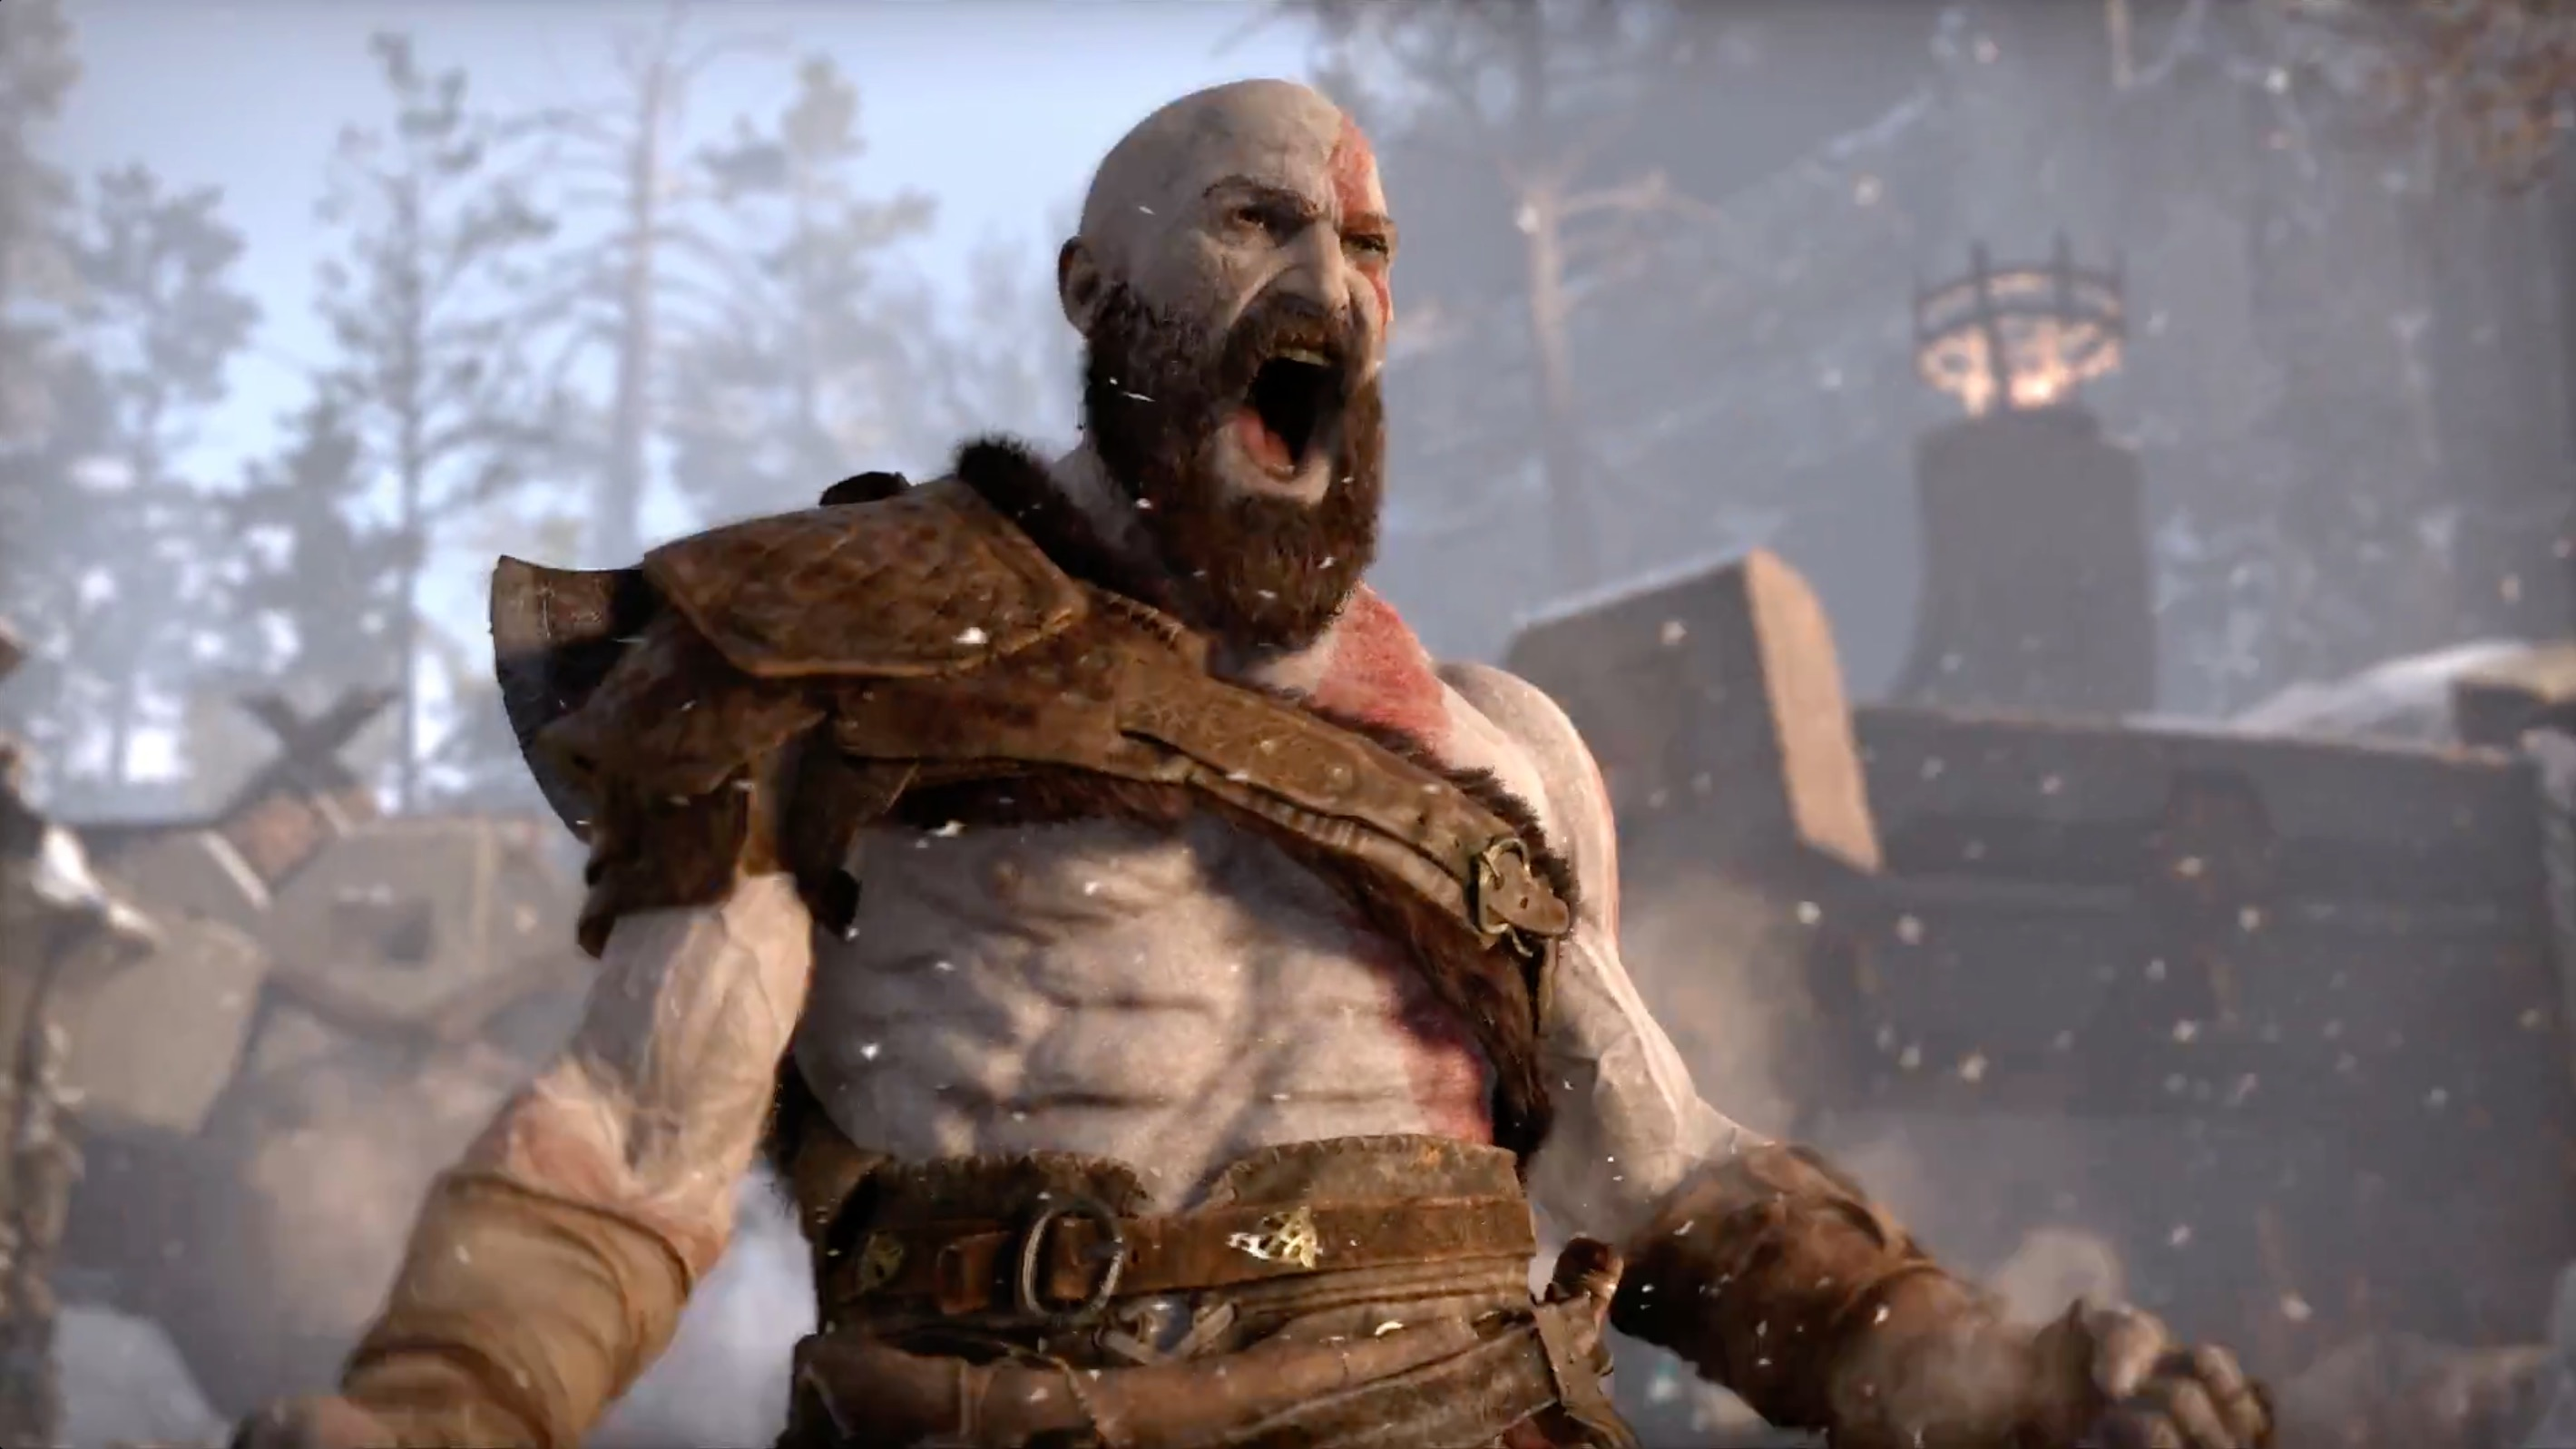 Dave Bautista Should Play Kratos In God Of War Film, Says Potential Director